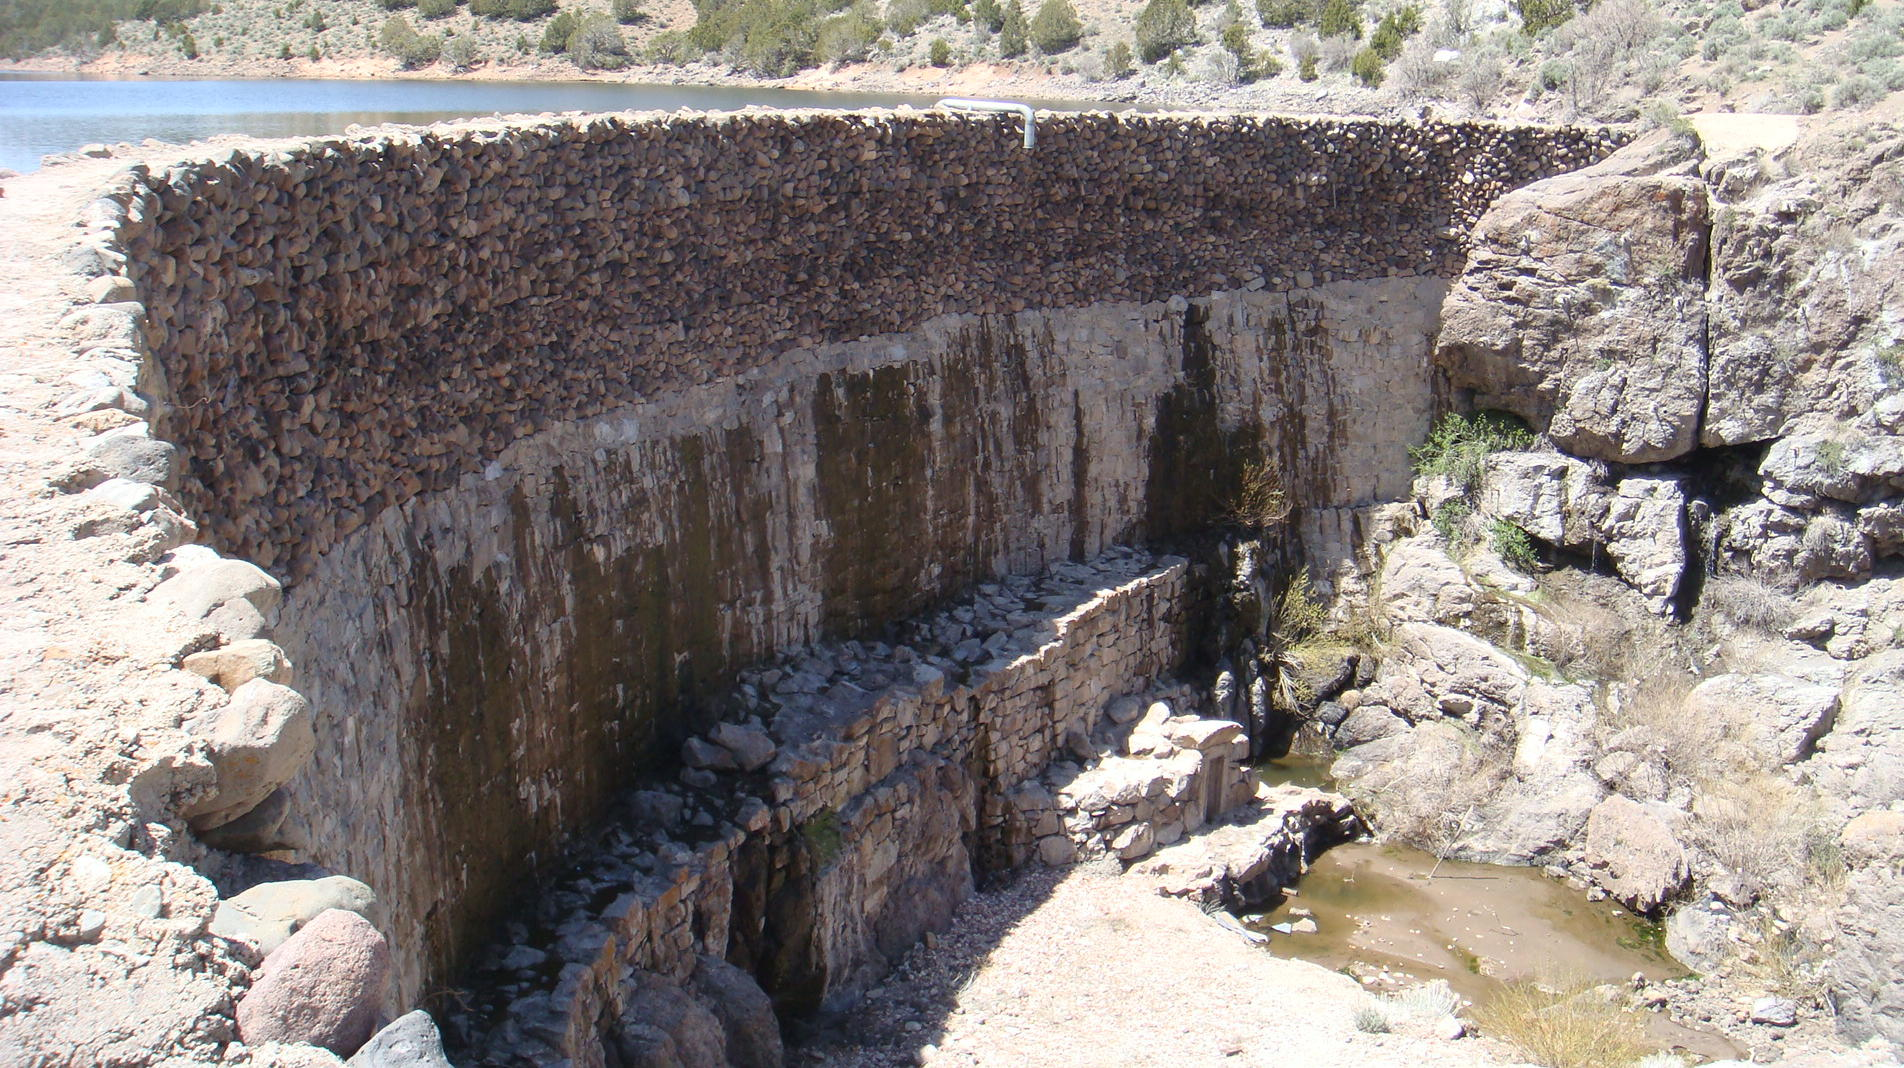 Downstream Side of the Enterprise Dam